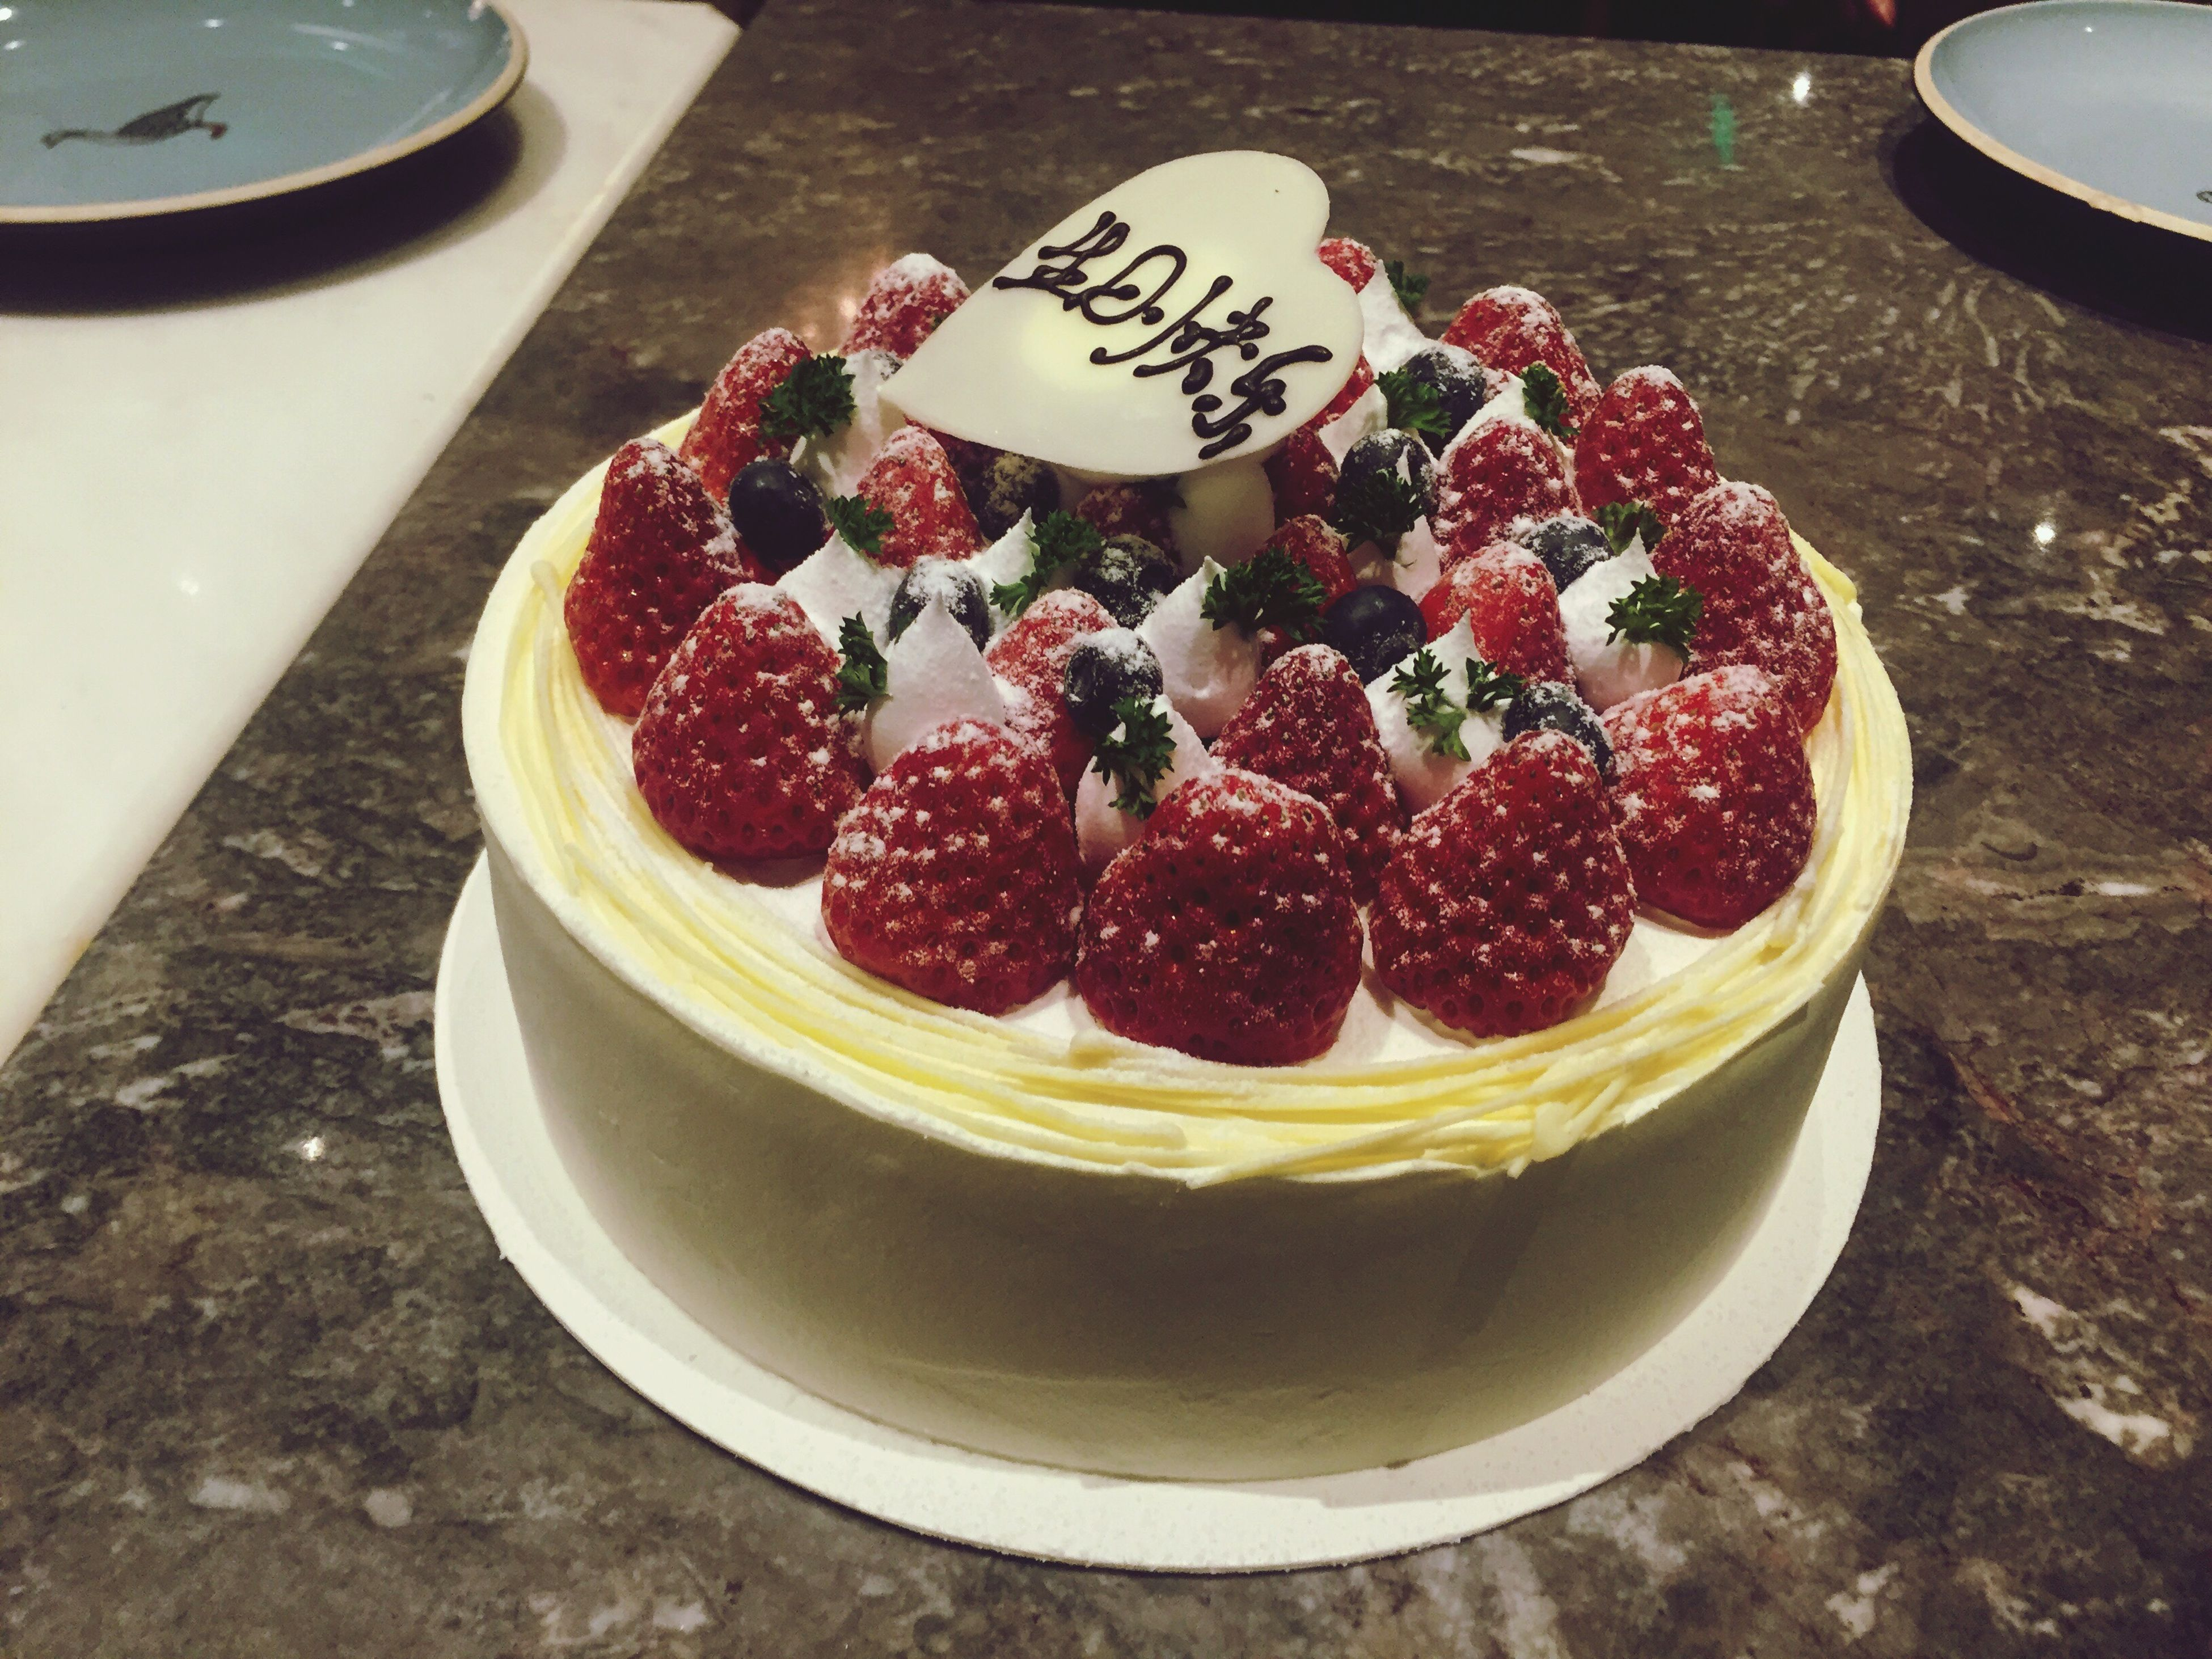 food and drink, food, freshness, sweet food, fruit, dessert, indoors, strawberry, ready-to-eat, indulgence, still life, raspberry, plate, cake, table, unhealthy eating, high angle view, berry fruit, temptation, blueberry